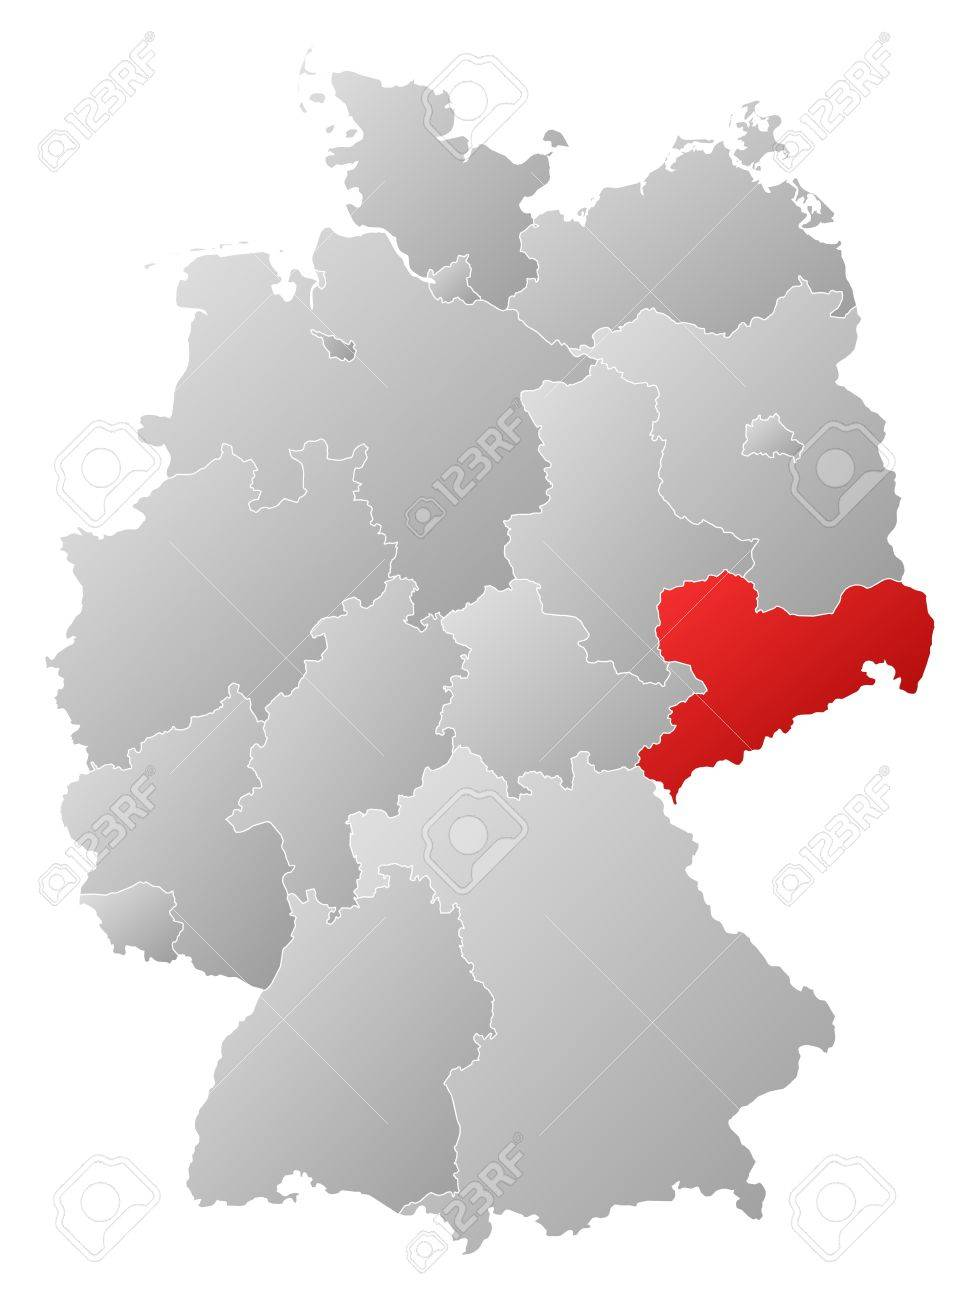 Political map of germany with the several states where saxony political map of germany with the several states where saxony is highlighted stock vector gumiabroncs Choice Image